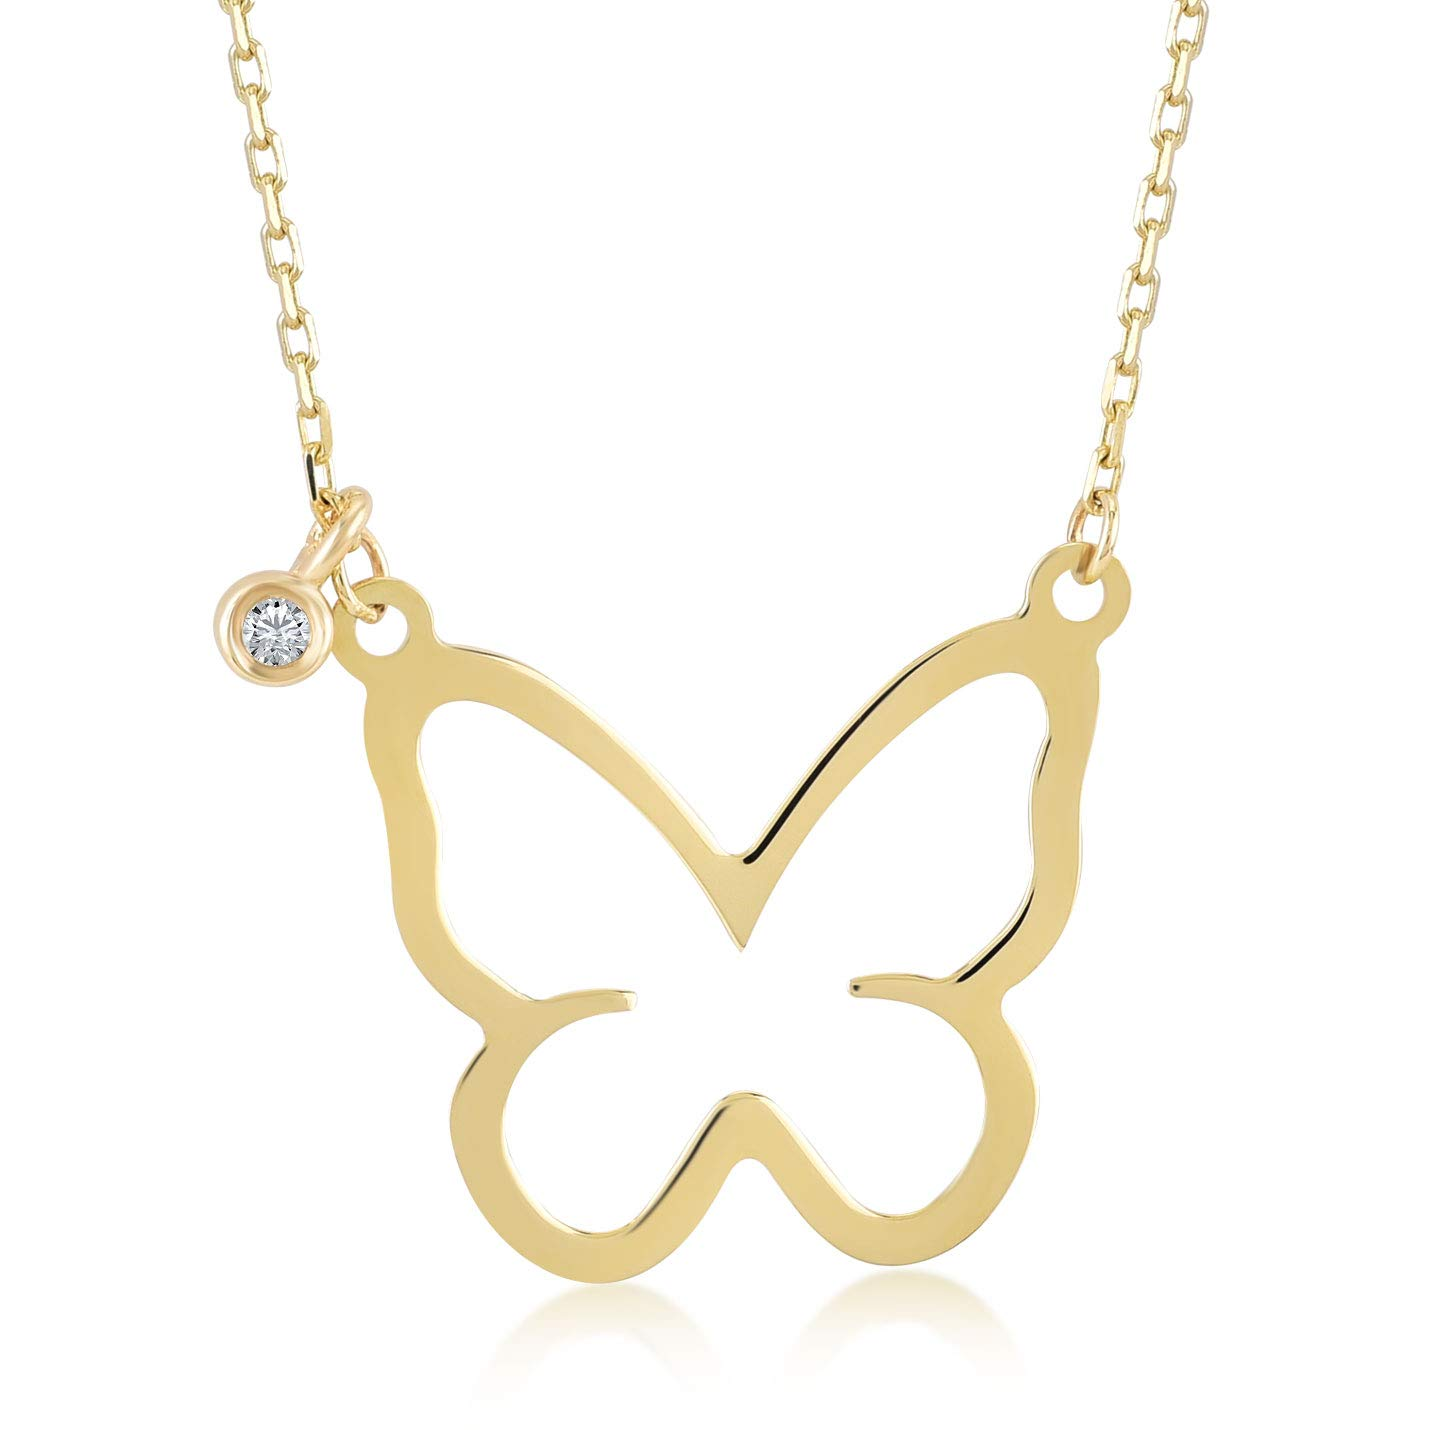 14k Yellow Gold 0,01 ct Diamond Butterfly Pendant Necklace for Women, A Perfect Surprise Gift for Her, 18 inch